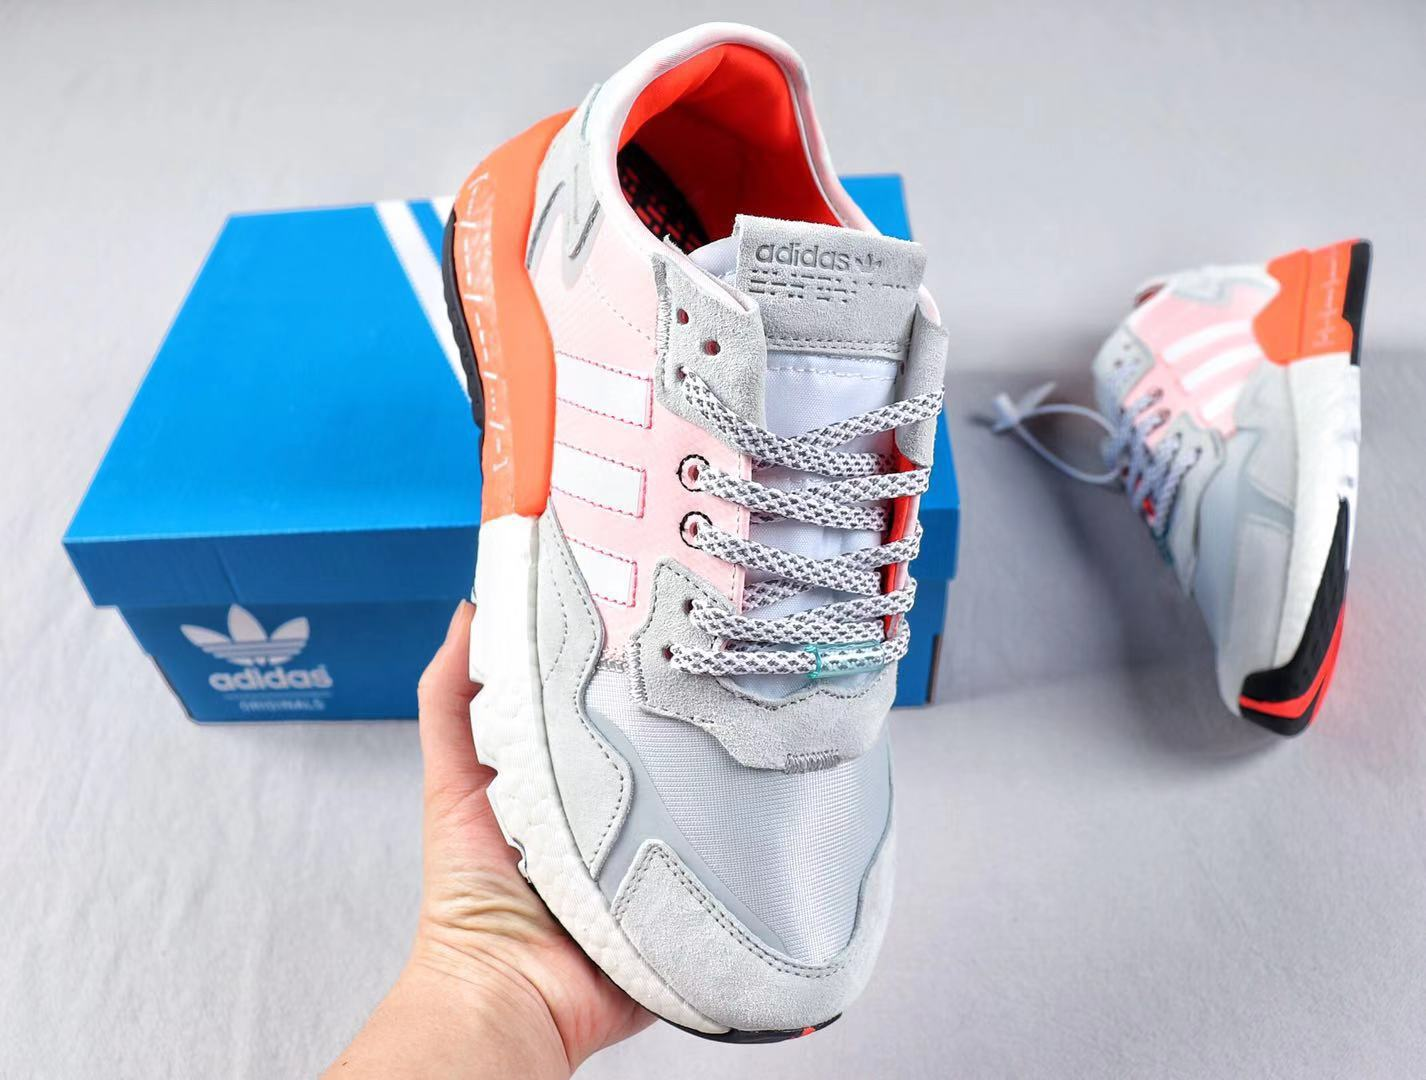 Adidas Nite Jogger White/Solar Red Best Sell Casual Trainers EH0249